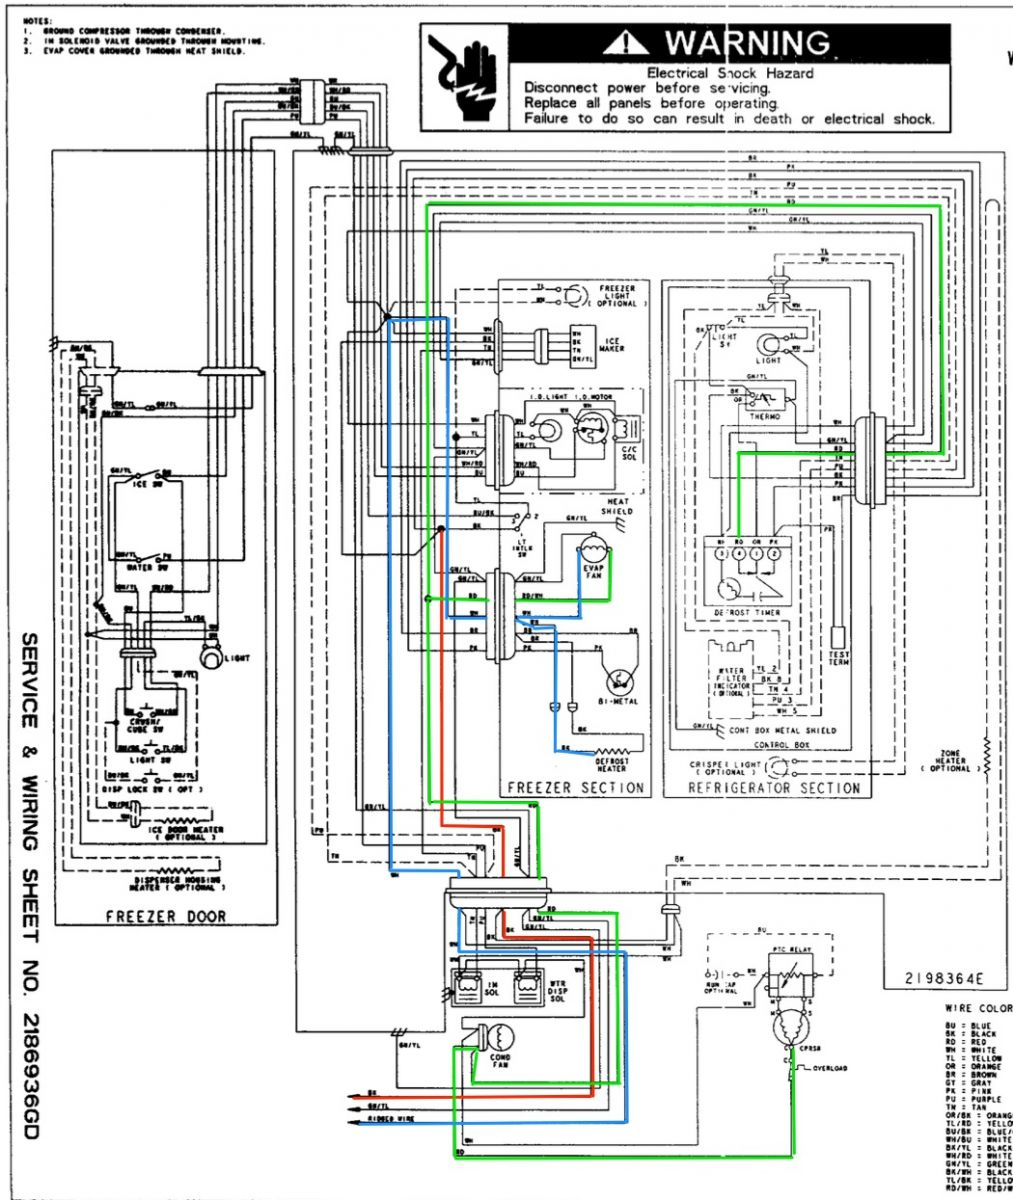 31 Getting Your Refrigerator To Run Without A Start Relay While You Wait For The Part additionally True Freezer Model T 49f Wiring Diagram additionally IMG 2740 moreover Wiring Diagram Ge Profile furthermore Refrigeration Schematic Drawing. on true refrigerator wiring diagram